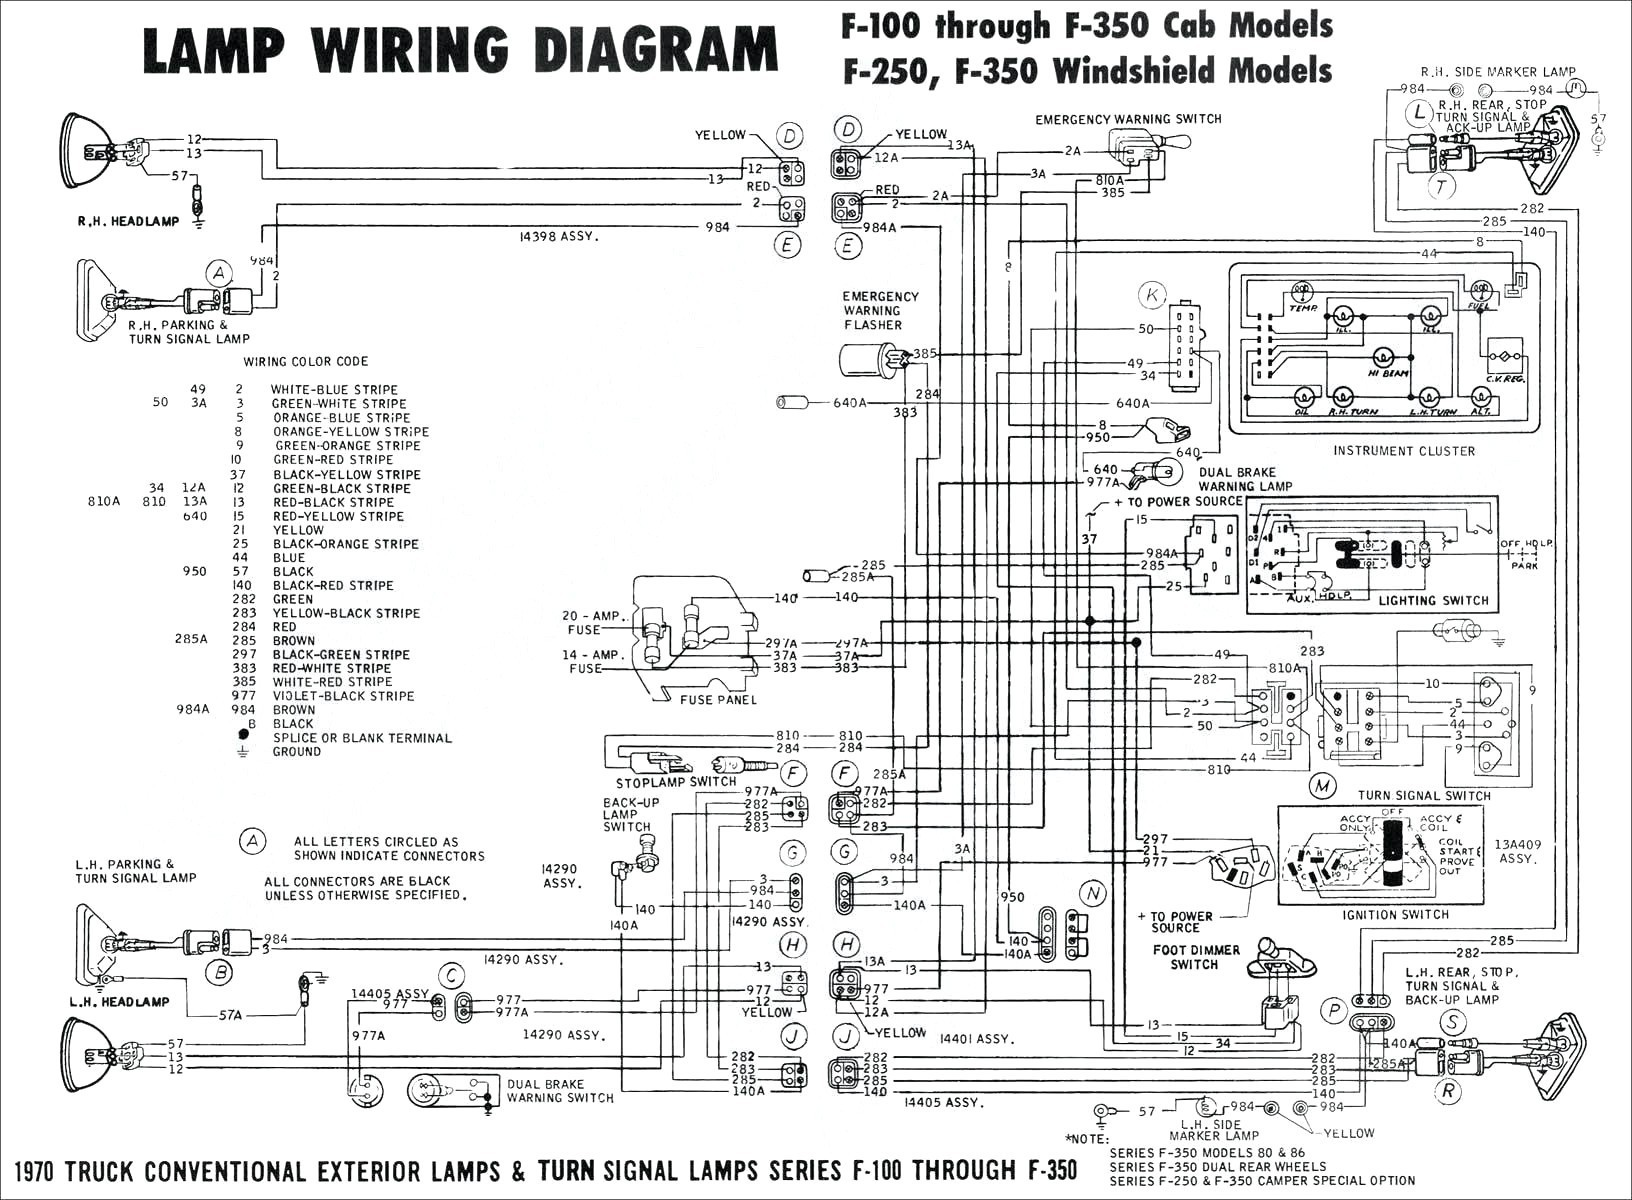 1994 Dakota Fuse Box Diagram - Wiring Diagrams on